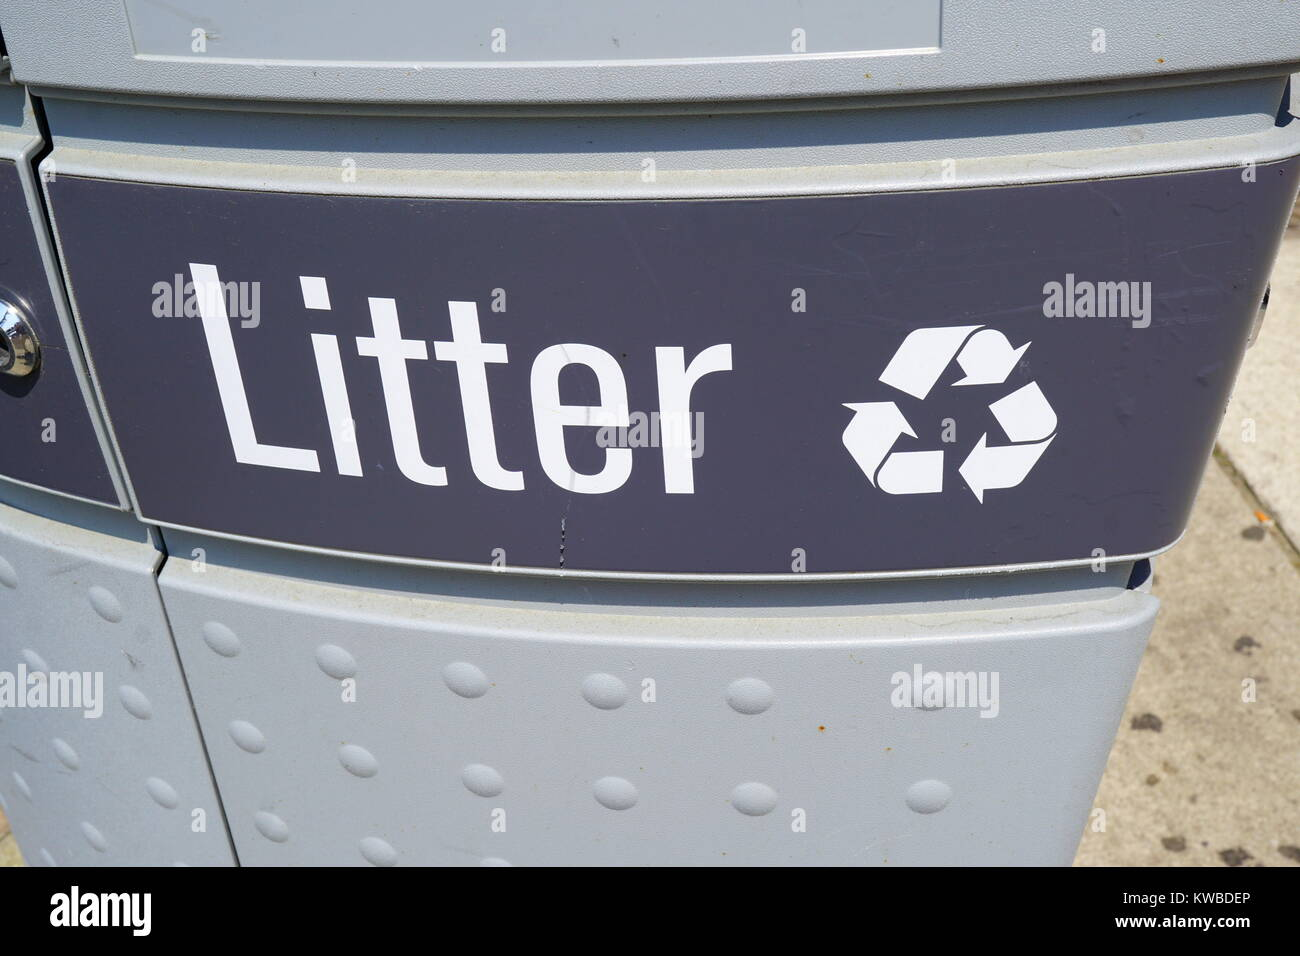 Garbage can with word 'litter' - Stock Image